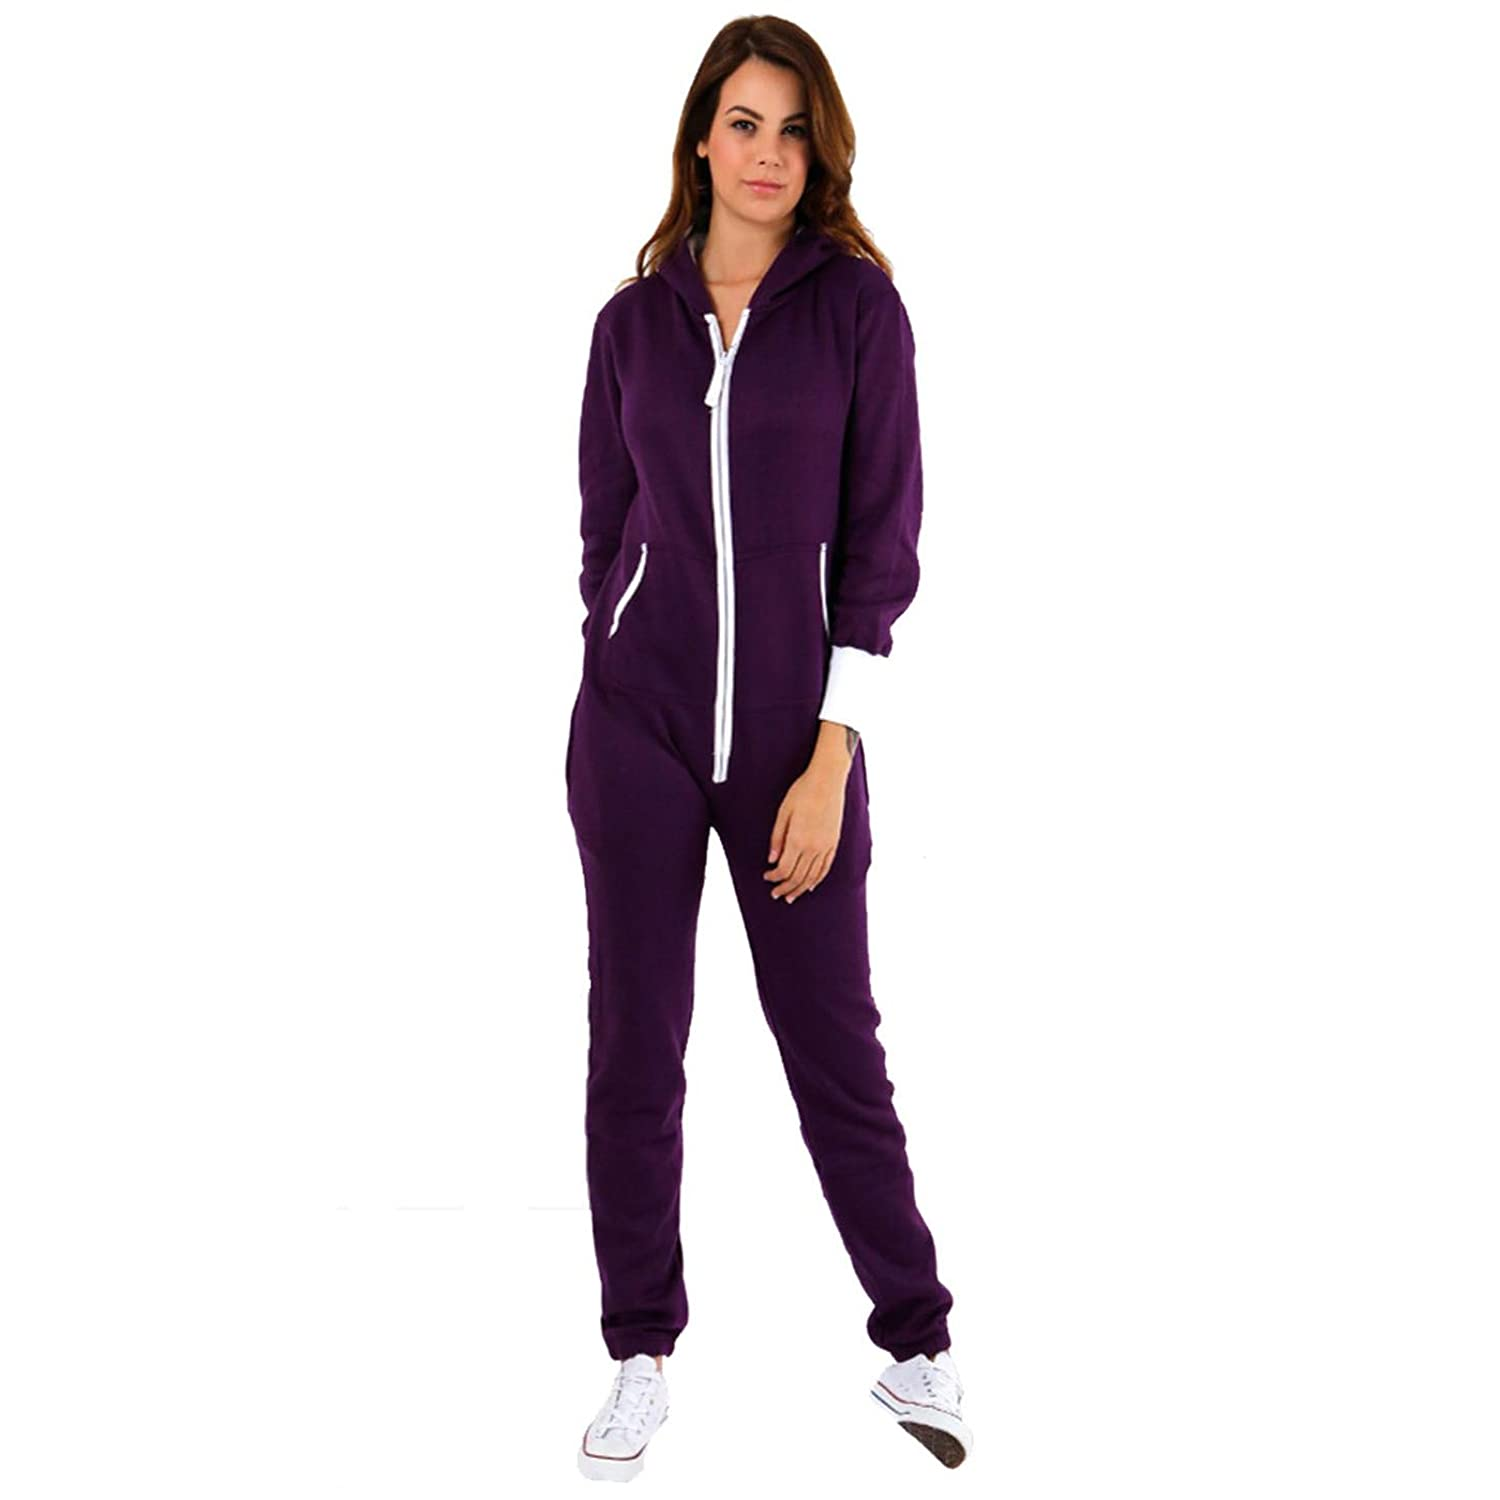 24b1e2a08254 Fatal Fashion Women's Plain Zipper Onesie Ladies Onepiece All in One Hooded  Zip Up Overall Jumpsuit Playsuit Onesie S-5XL 8-22: Amazon.co.uk: Clothing